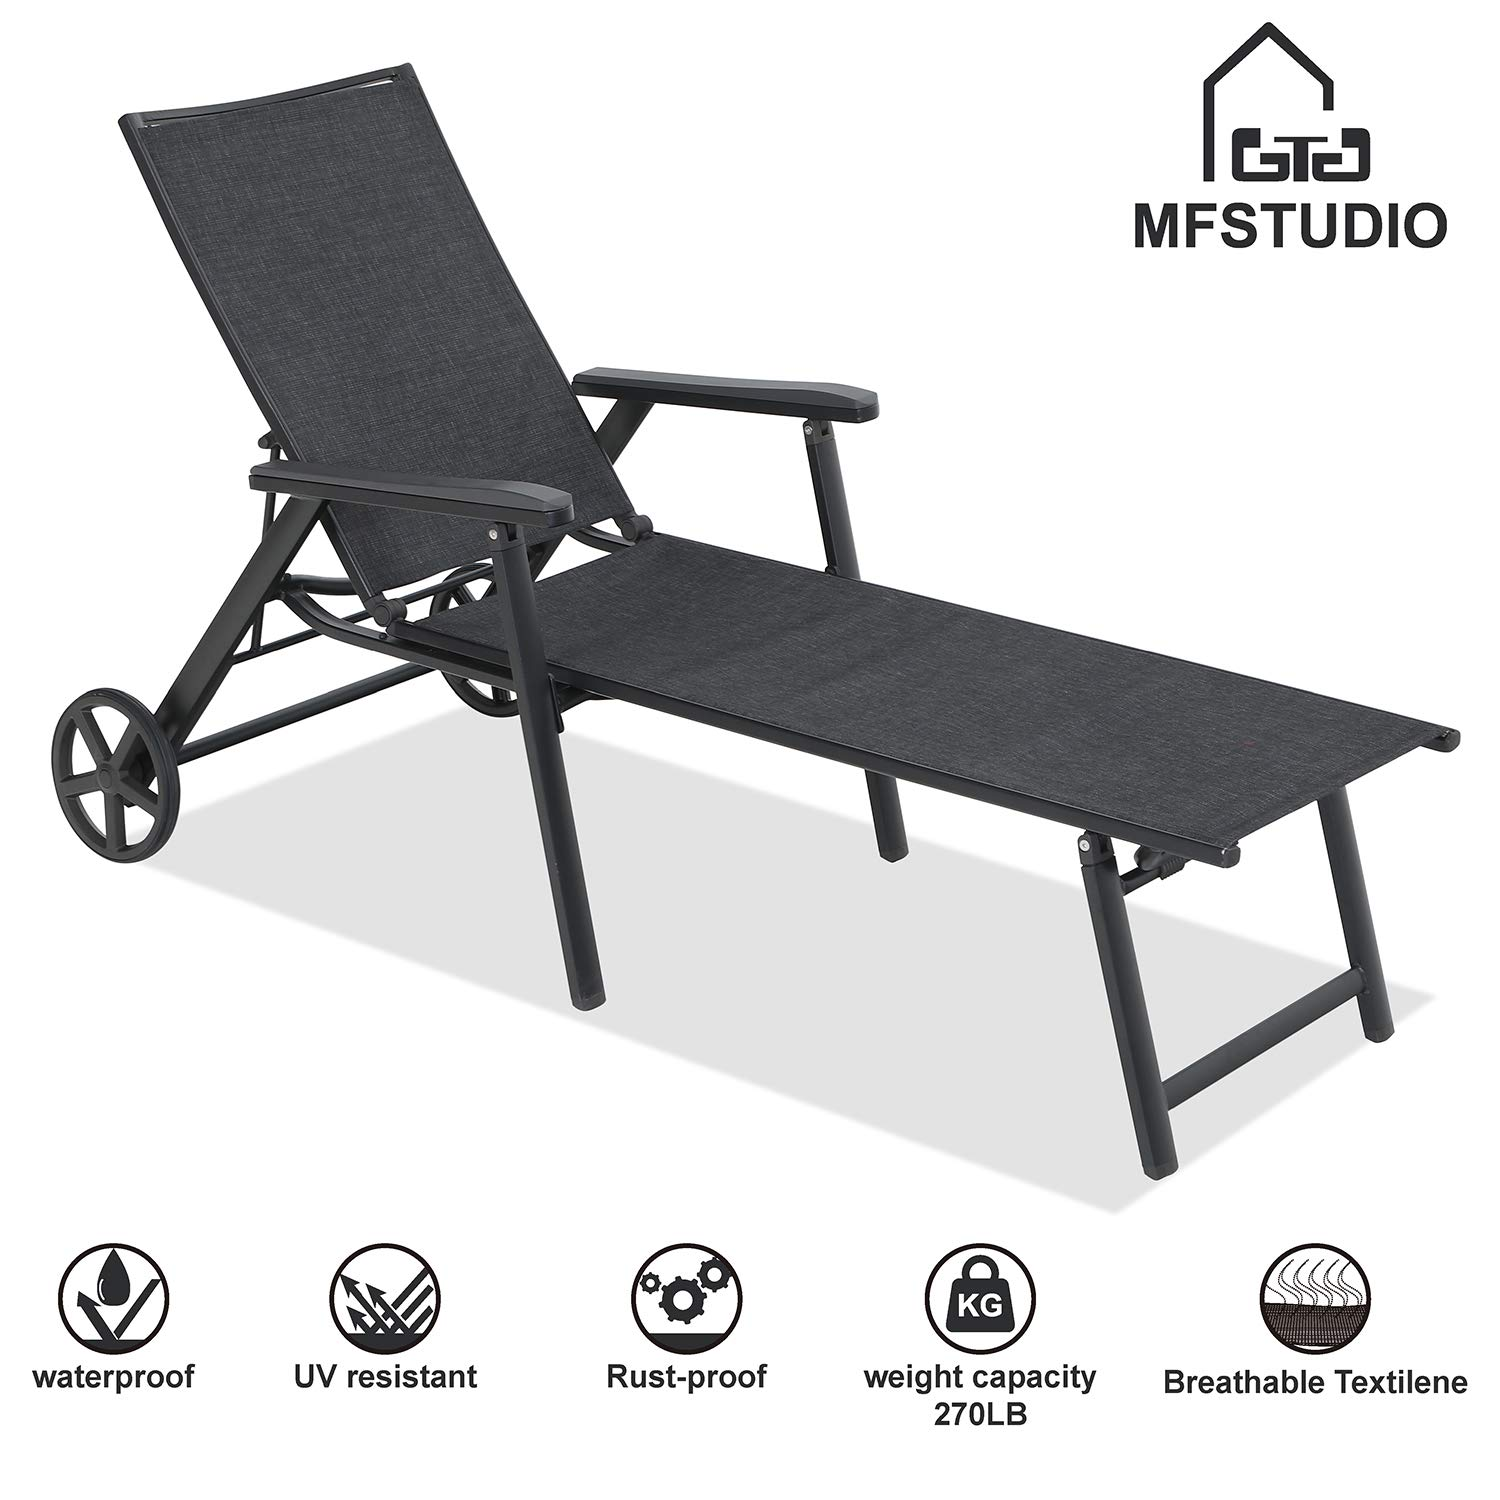 MF STUDIO Sling Chaise Folding Back Adjustable Patio Lounge Chairs Metal Textilene Lounger Recliner Chair W/Wheels, Black